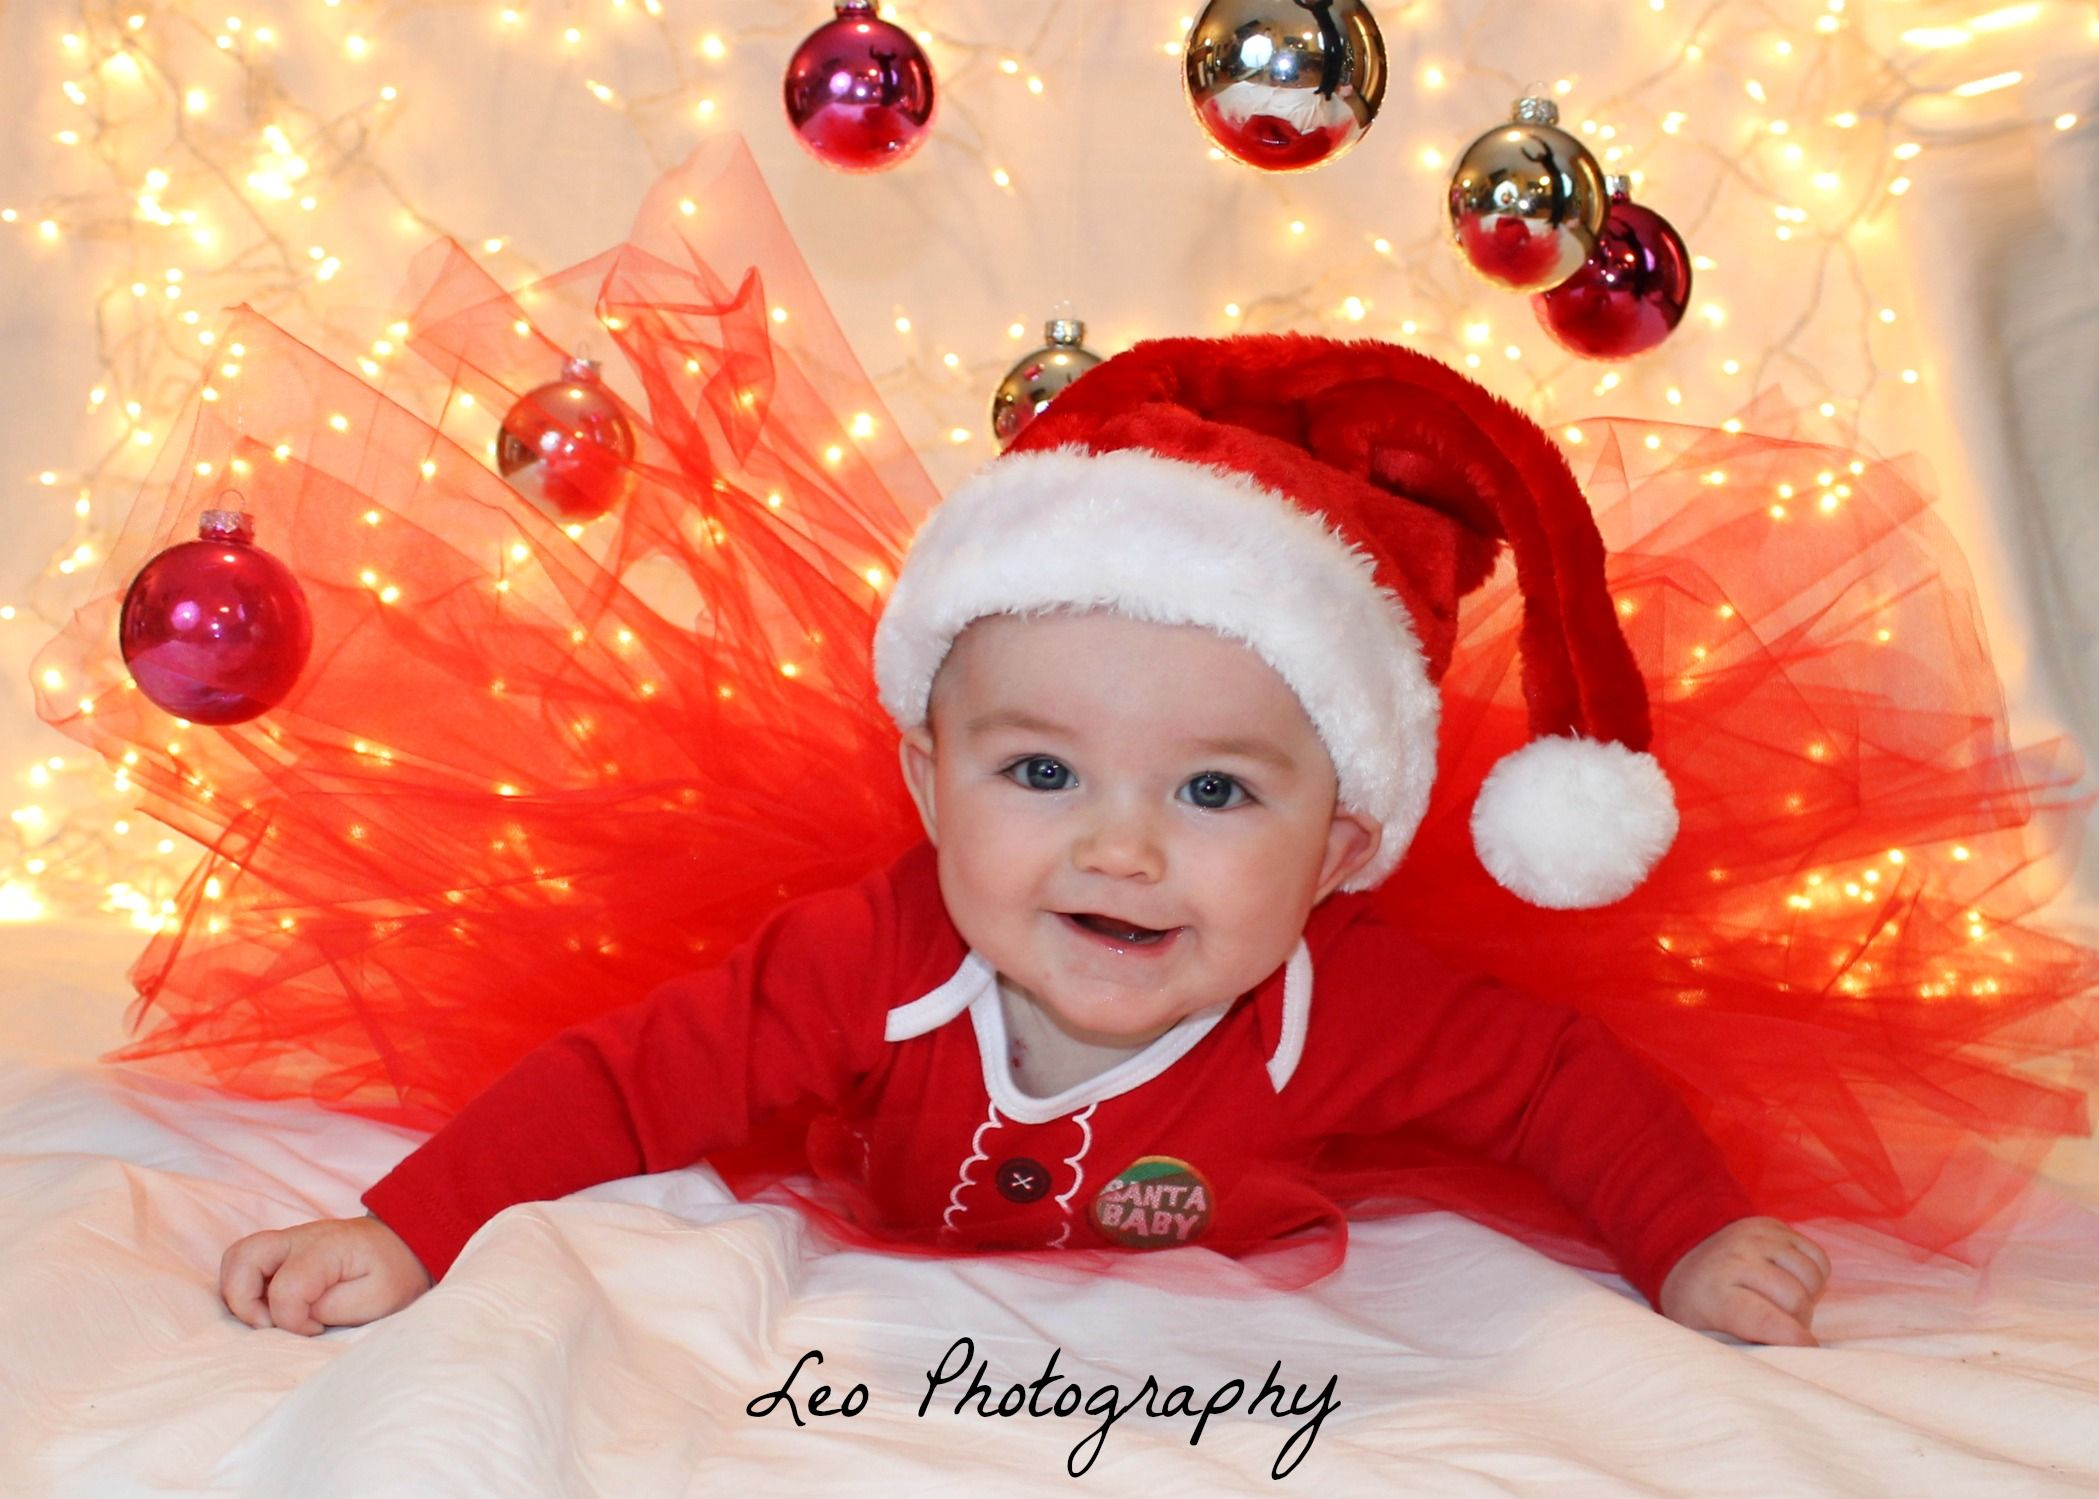 Leo Photography By Danielle Atchison Baby Christmas Photos New Baby Products Baby Pictures